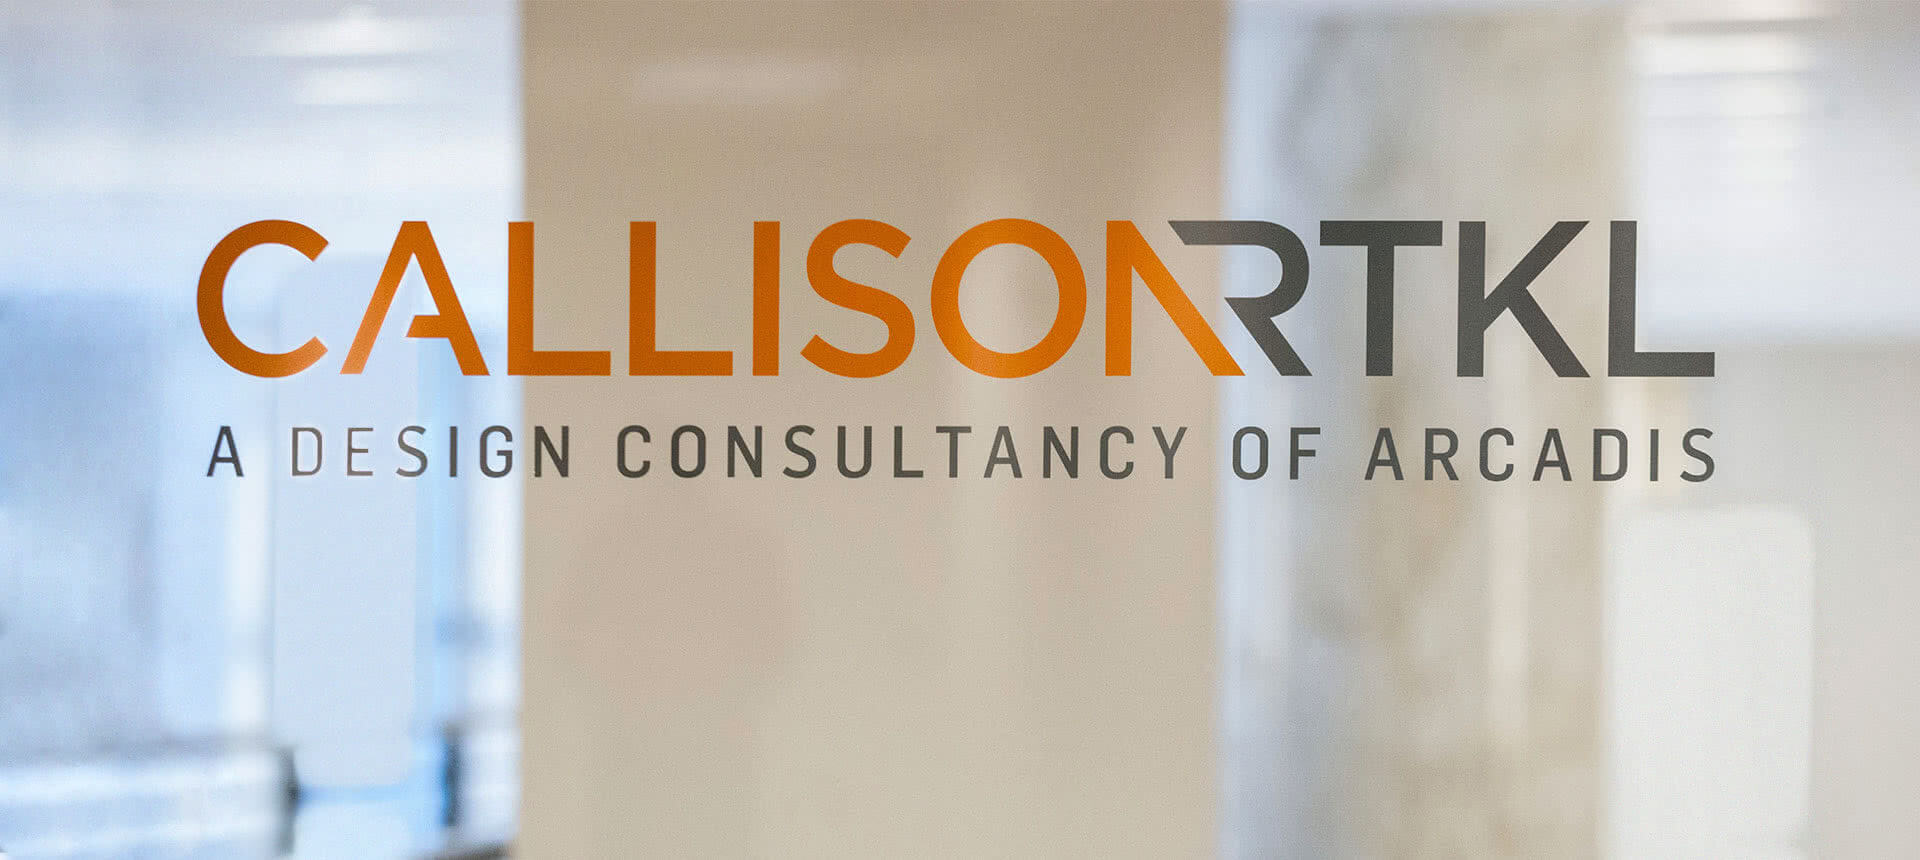 CallisonRTKL Launches New Brand Identity